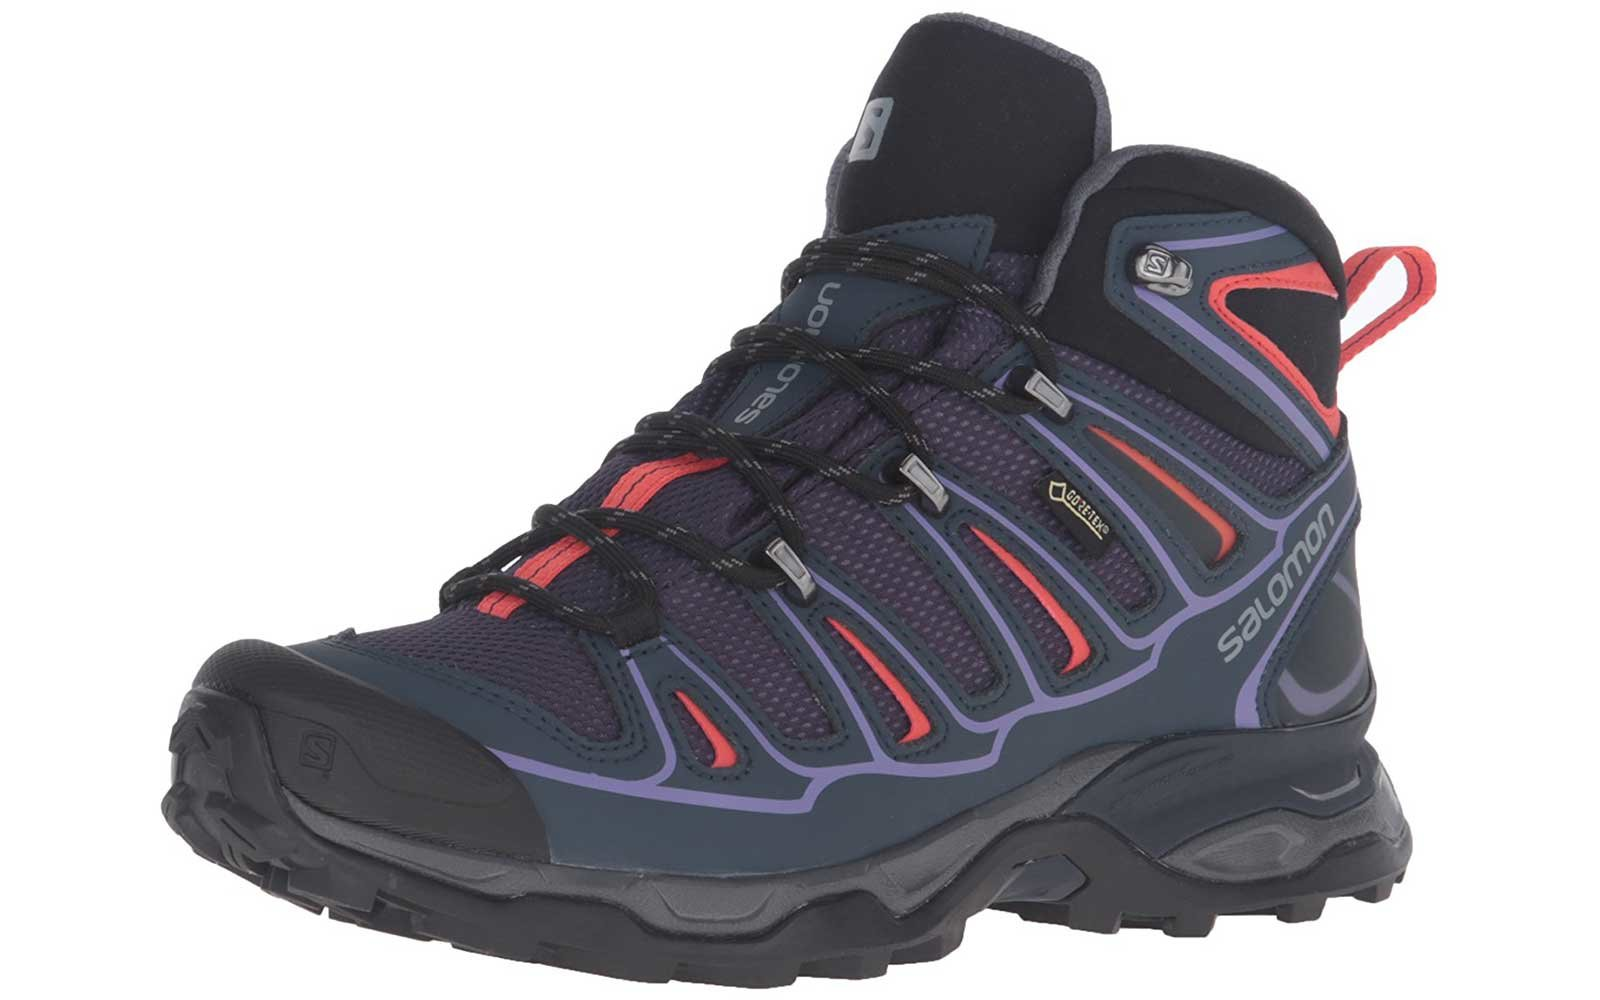 Salomon hiking shoes for women